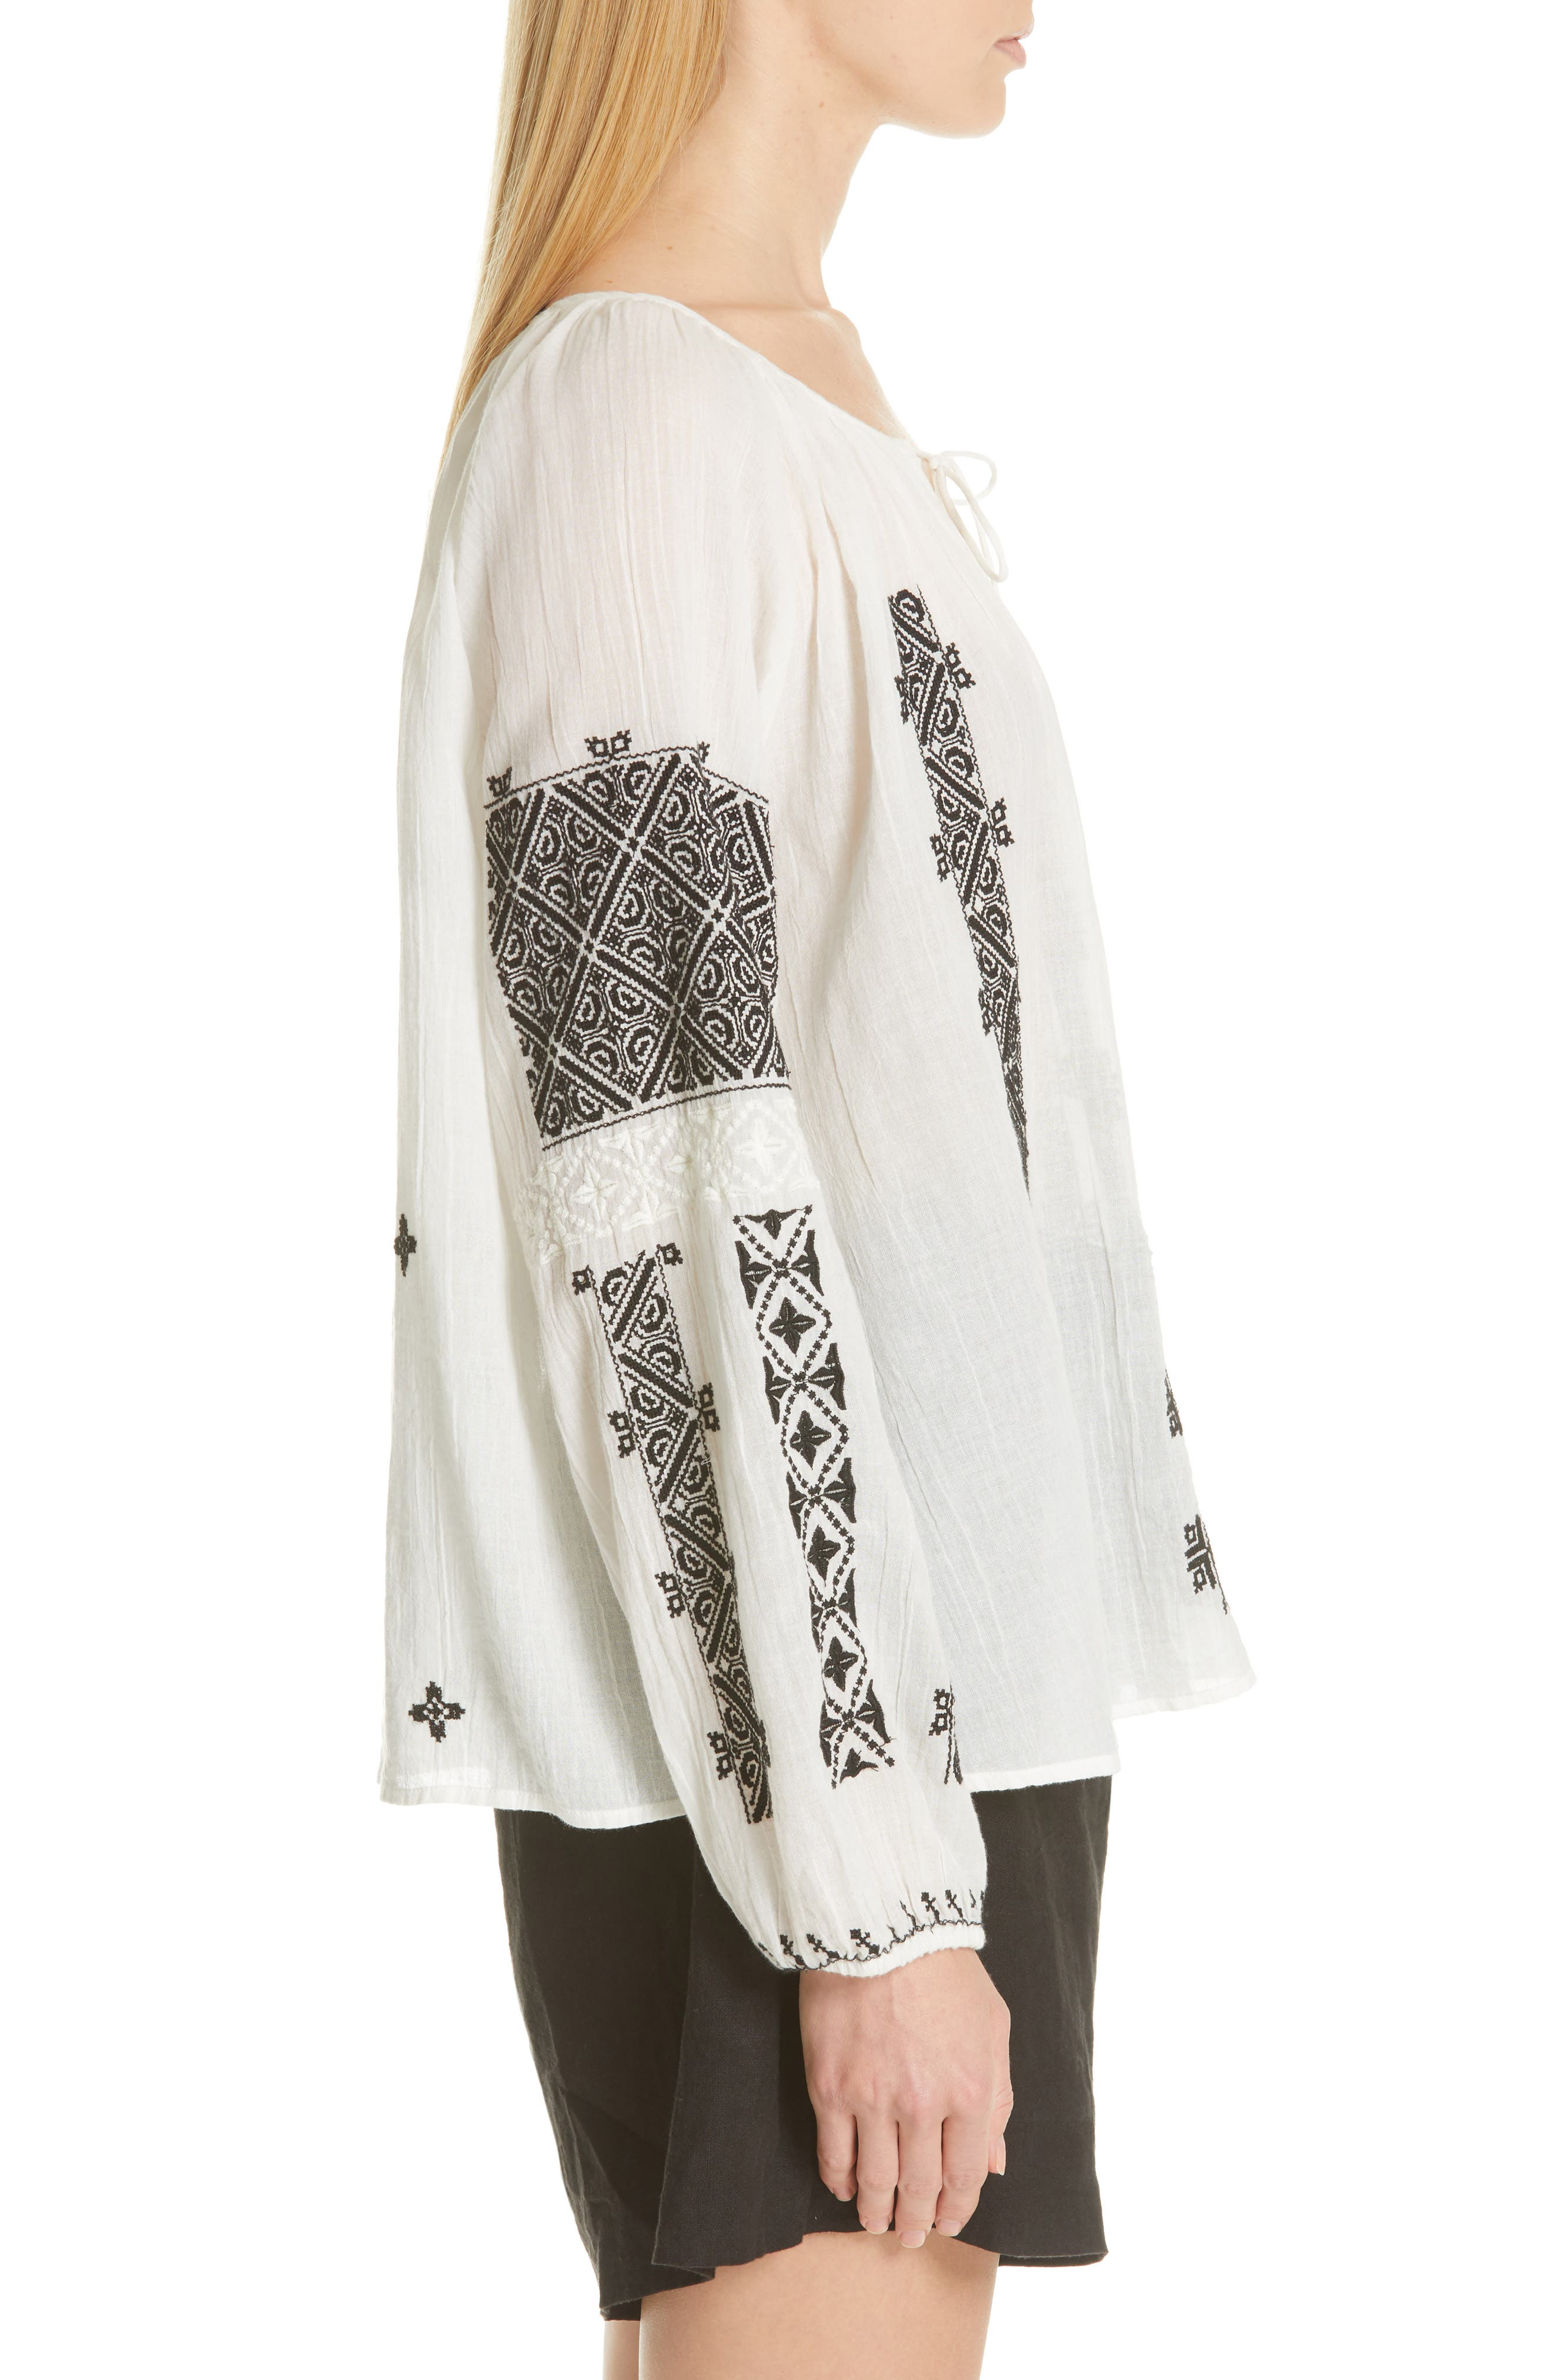 NILI LOTAN, Alassio Embroidered Blouse, Alternate thumbnail 3, color, IVORY WITH BLACK EMBROIDERY